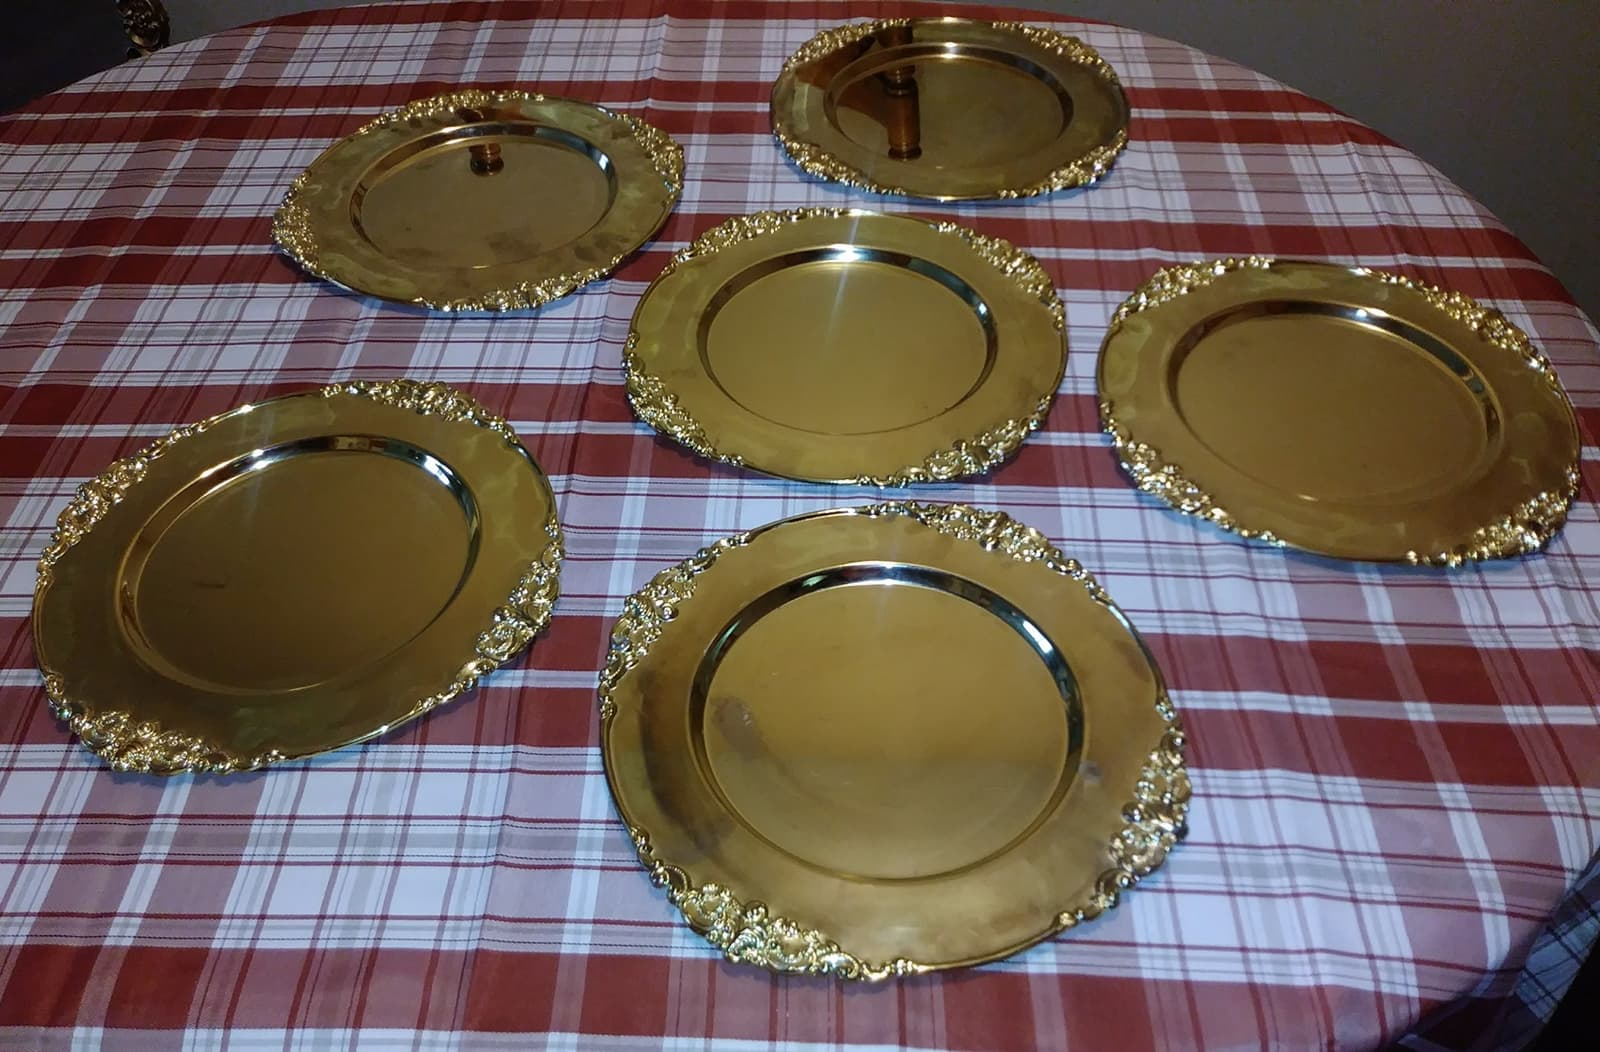 Set of 6 heavy gold chargers- $15.00